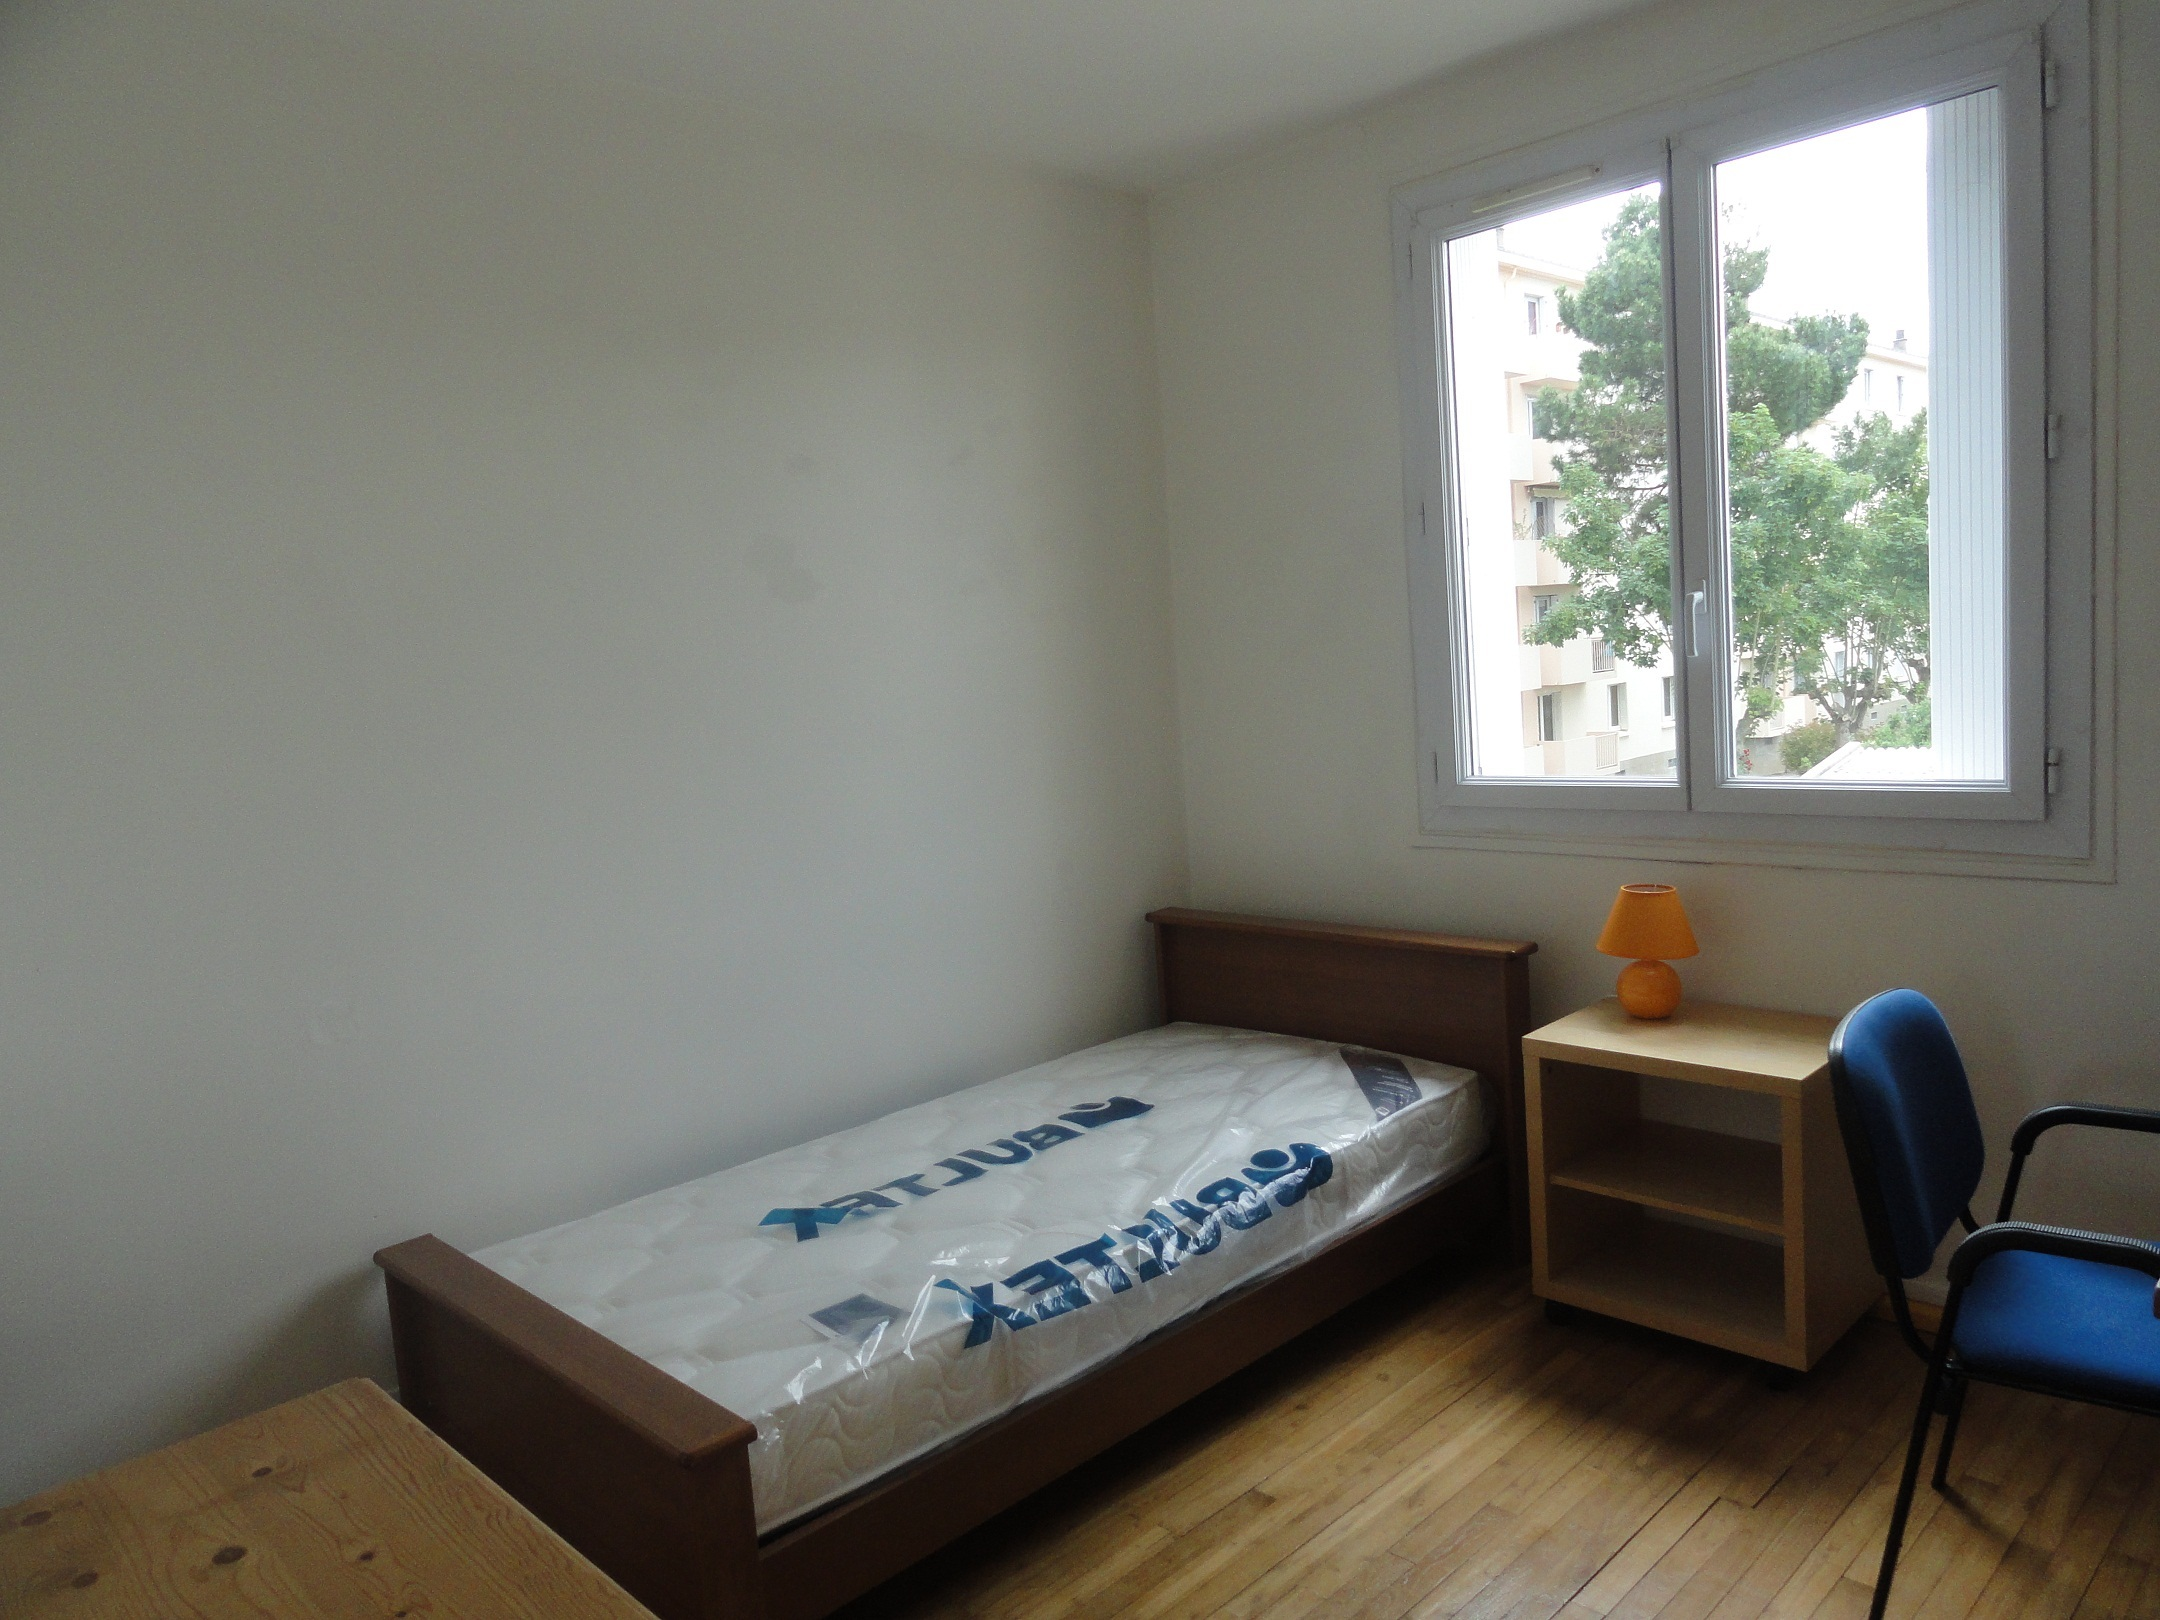 T4 in shared flat with 3 bedrooms